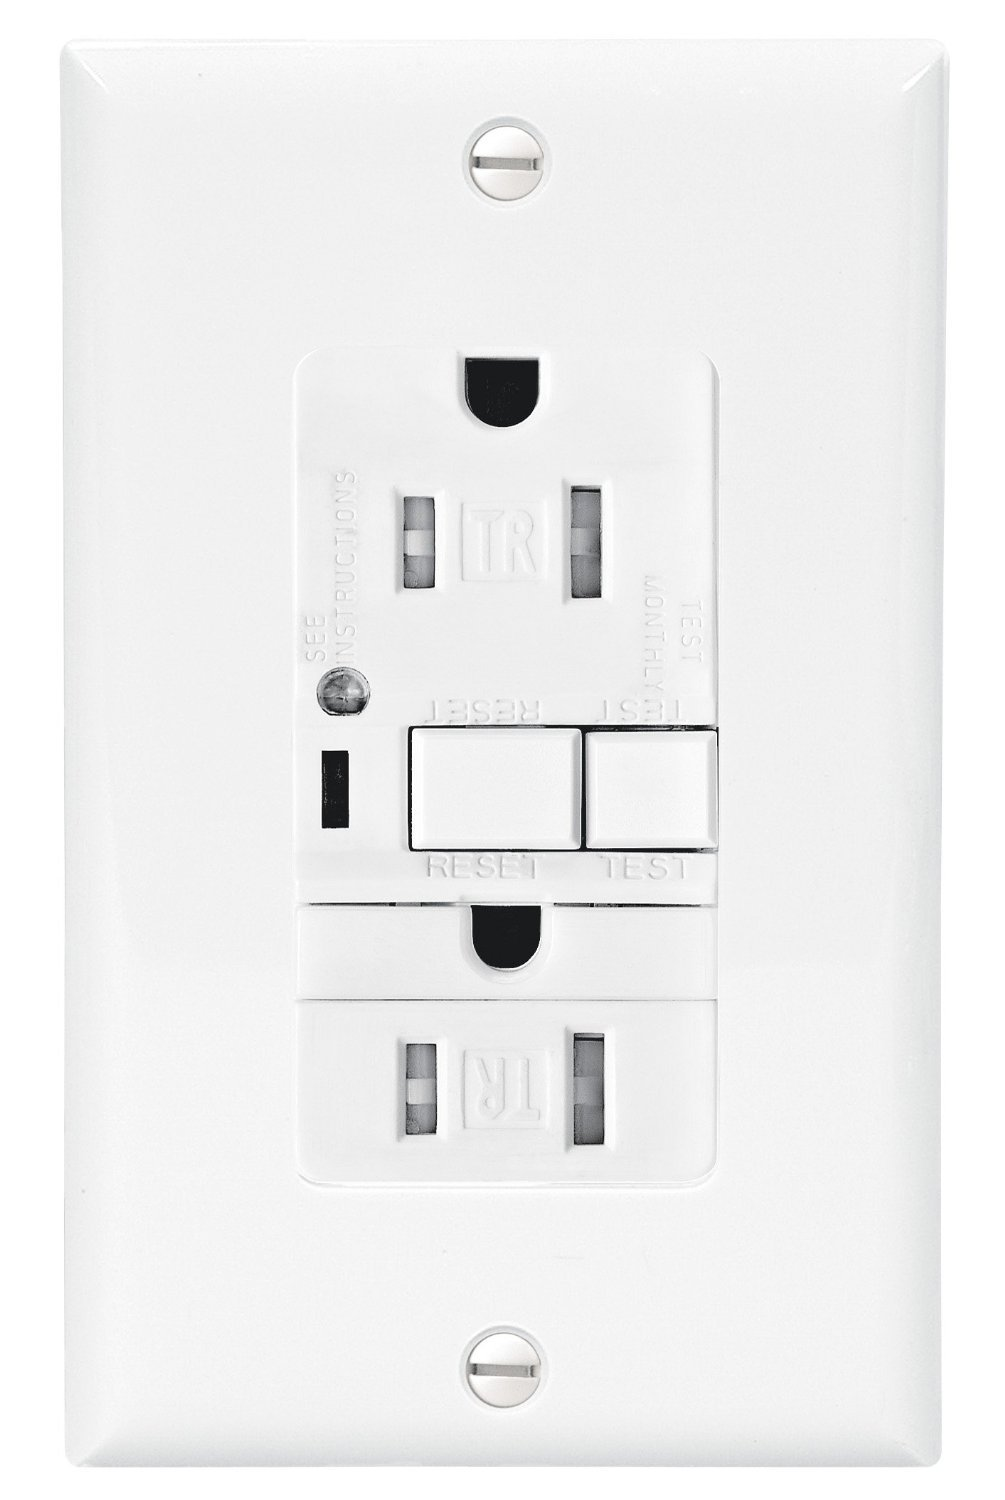 Cooper Wiring Devices TRVGFNL15A Tamper Resistant 15-Amp Combination GFCI  Receptacle with Nightlight, Almond Finish - Electrical Boxes - Amazon.com